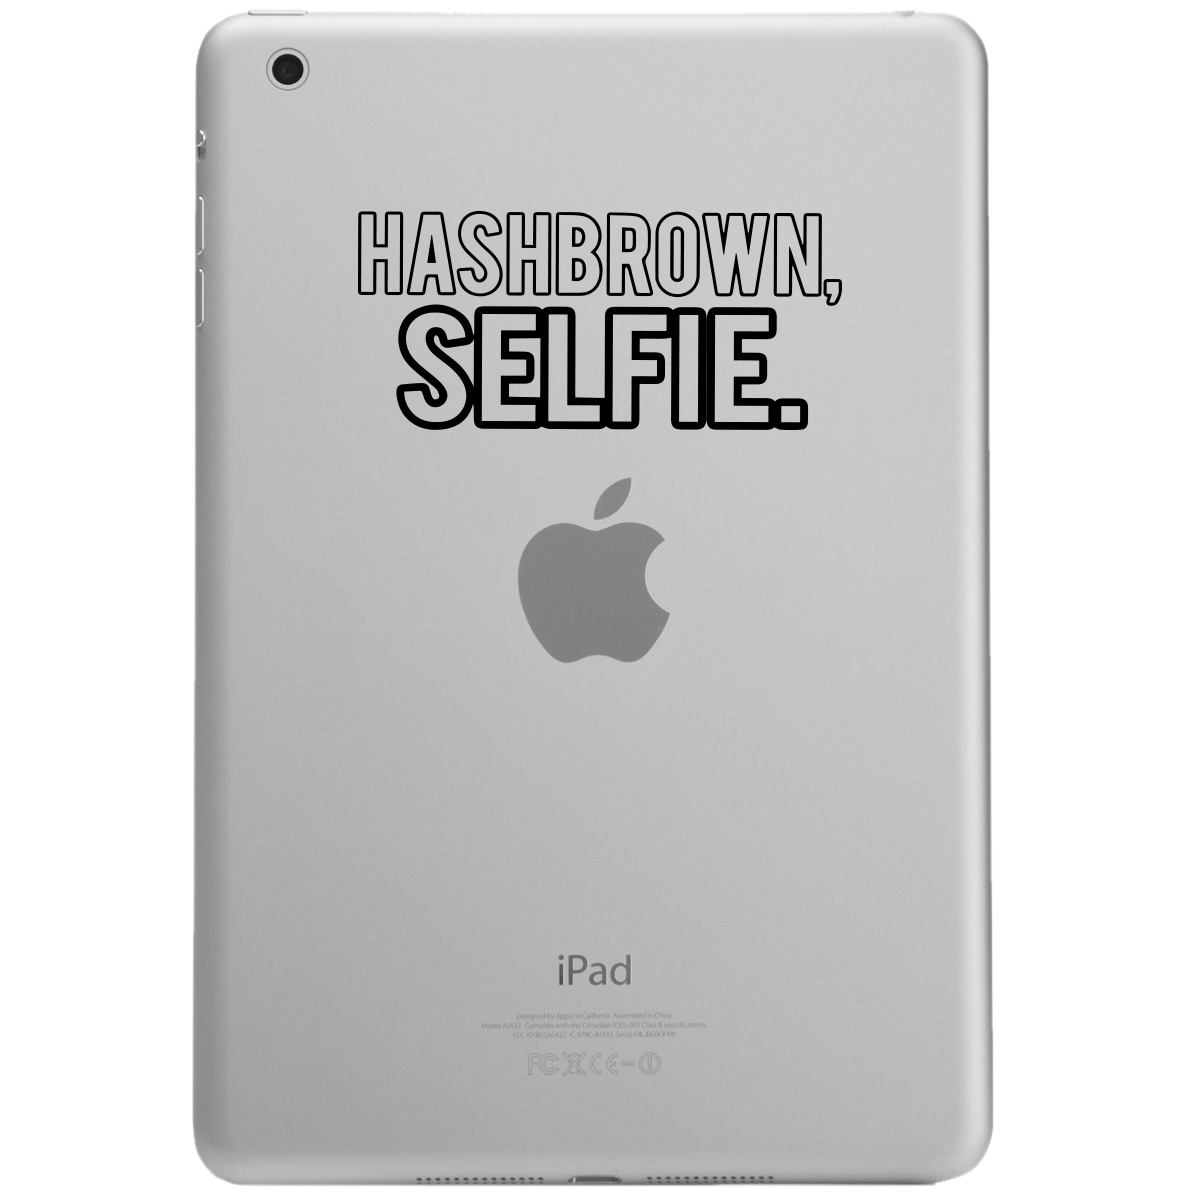 Hashbrown Selfie Funny iPad Tablet Vinyl Sticker Decal